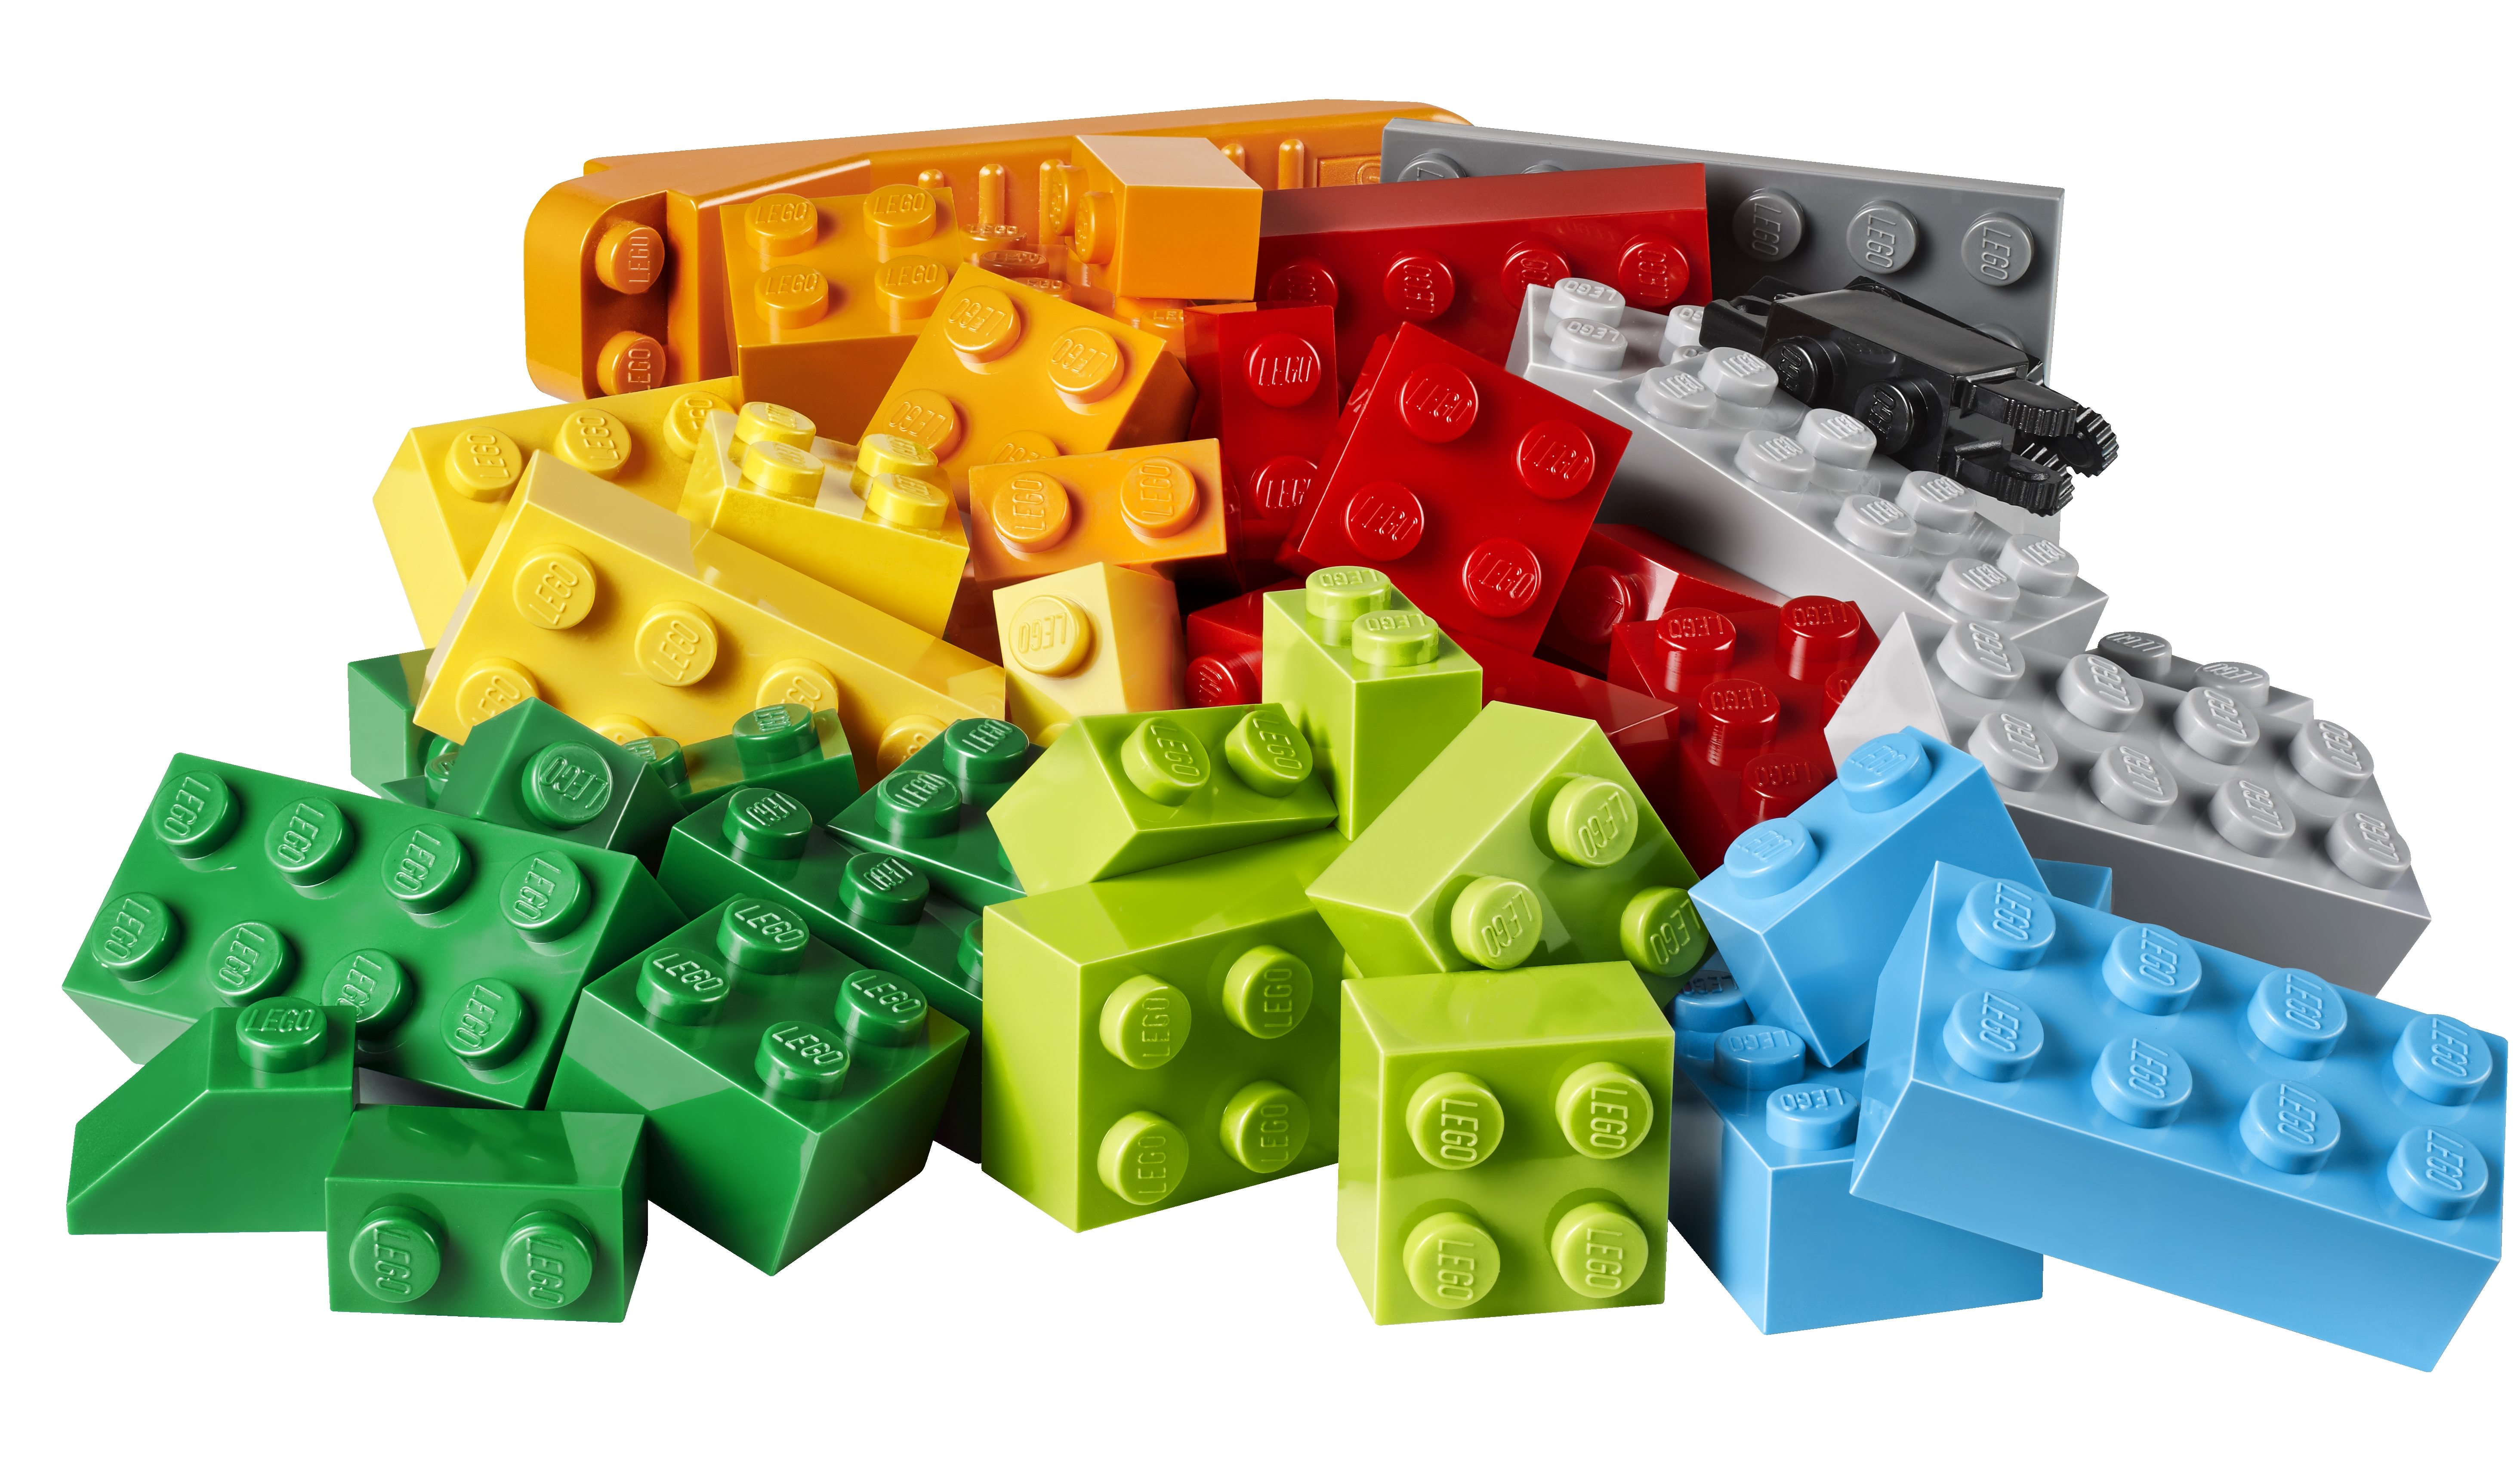 Images of Lego | 5857x3442